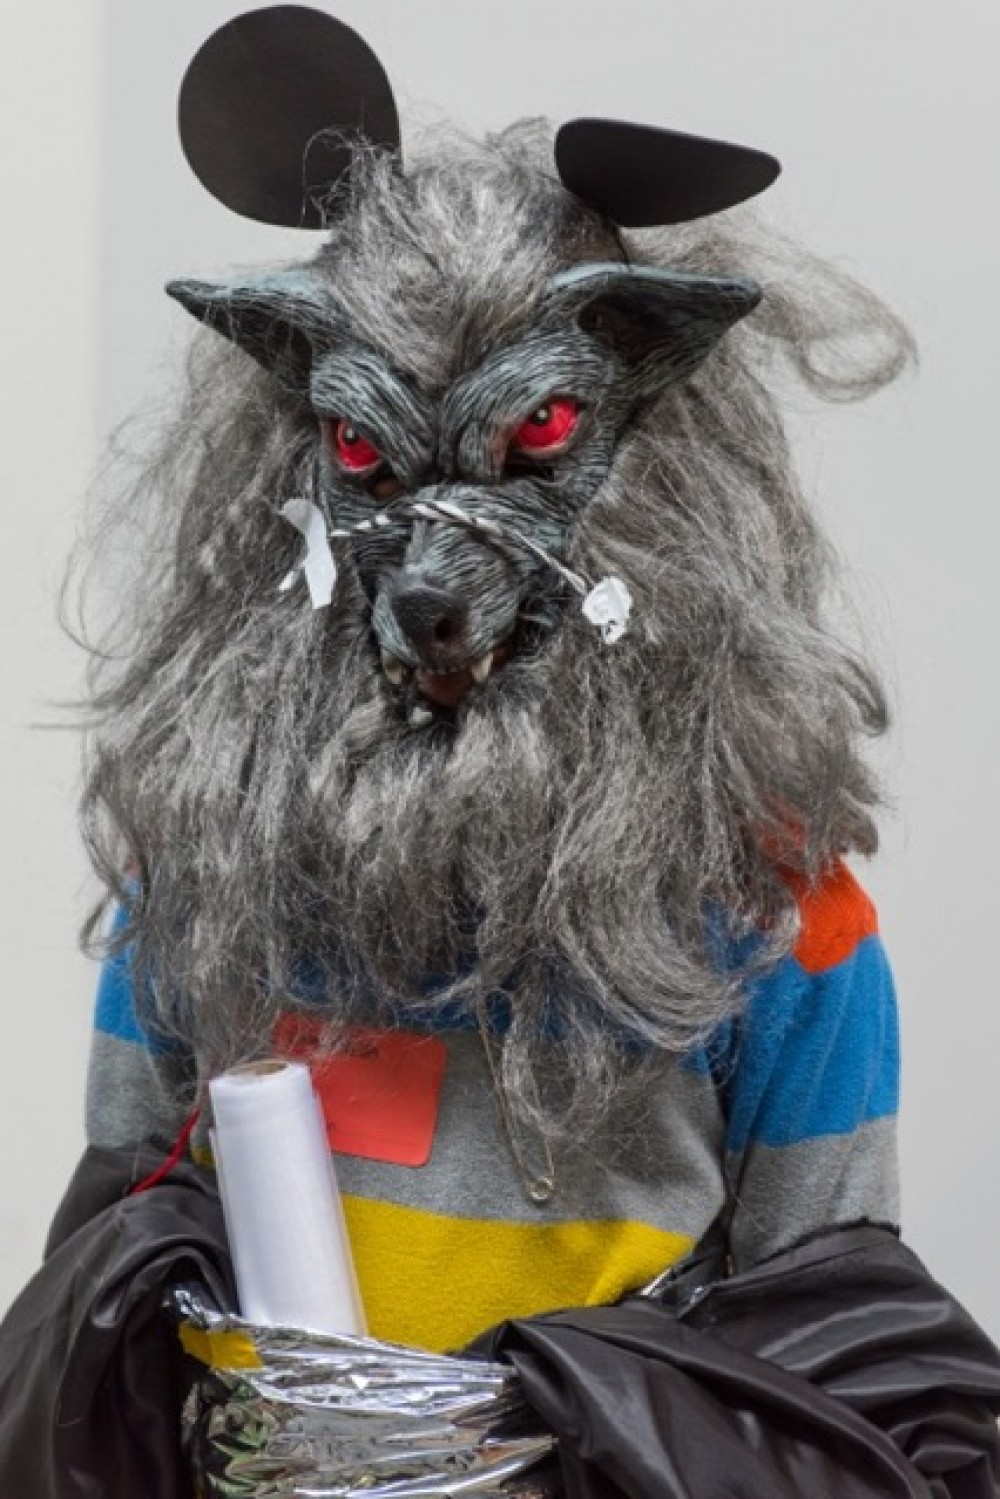 Someone wearing a stripped top and a werwolf mask is centred in the photograph. They have a role of plastic tucked into their clothing.